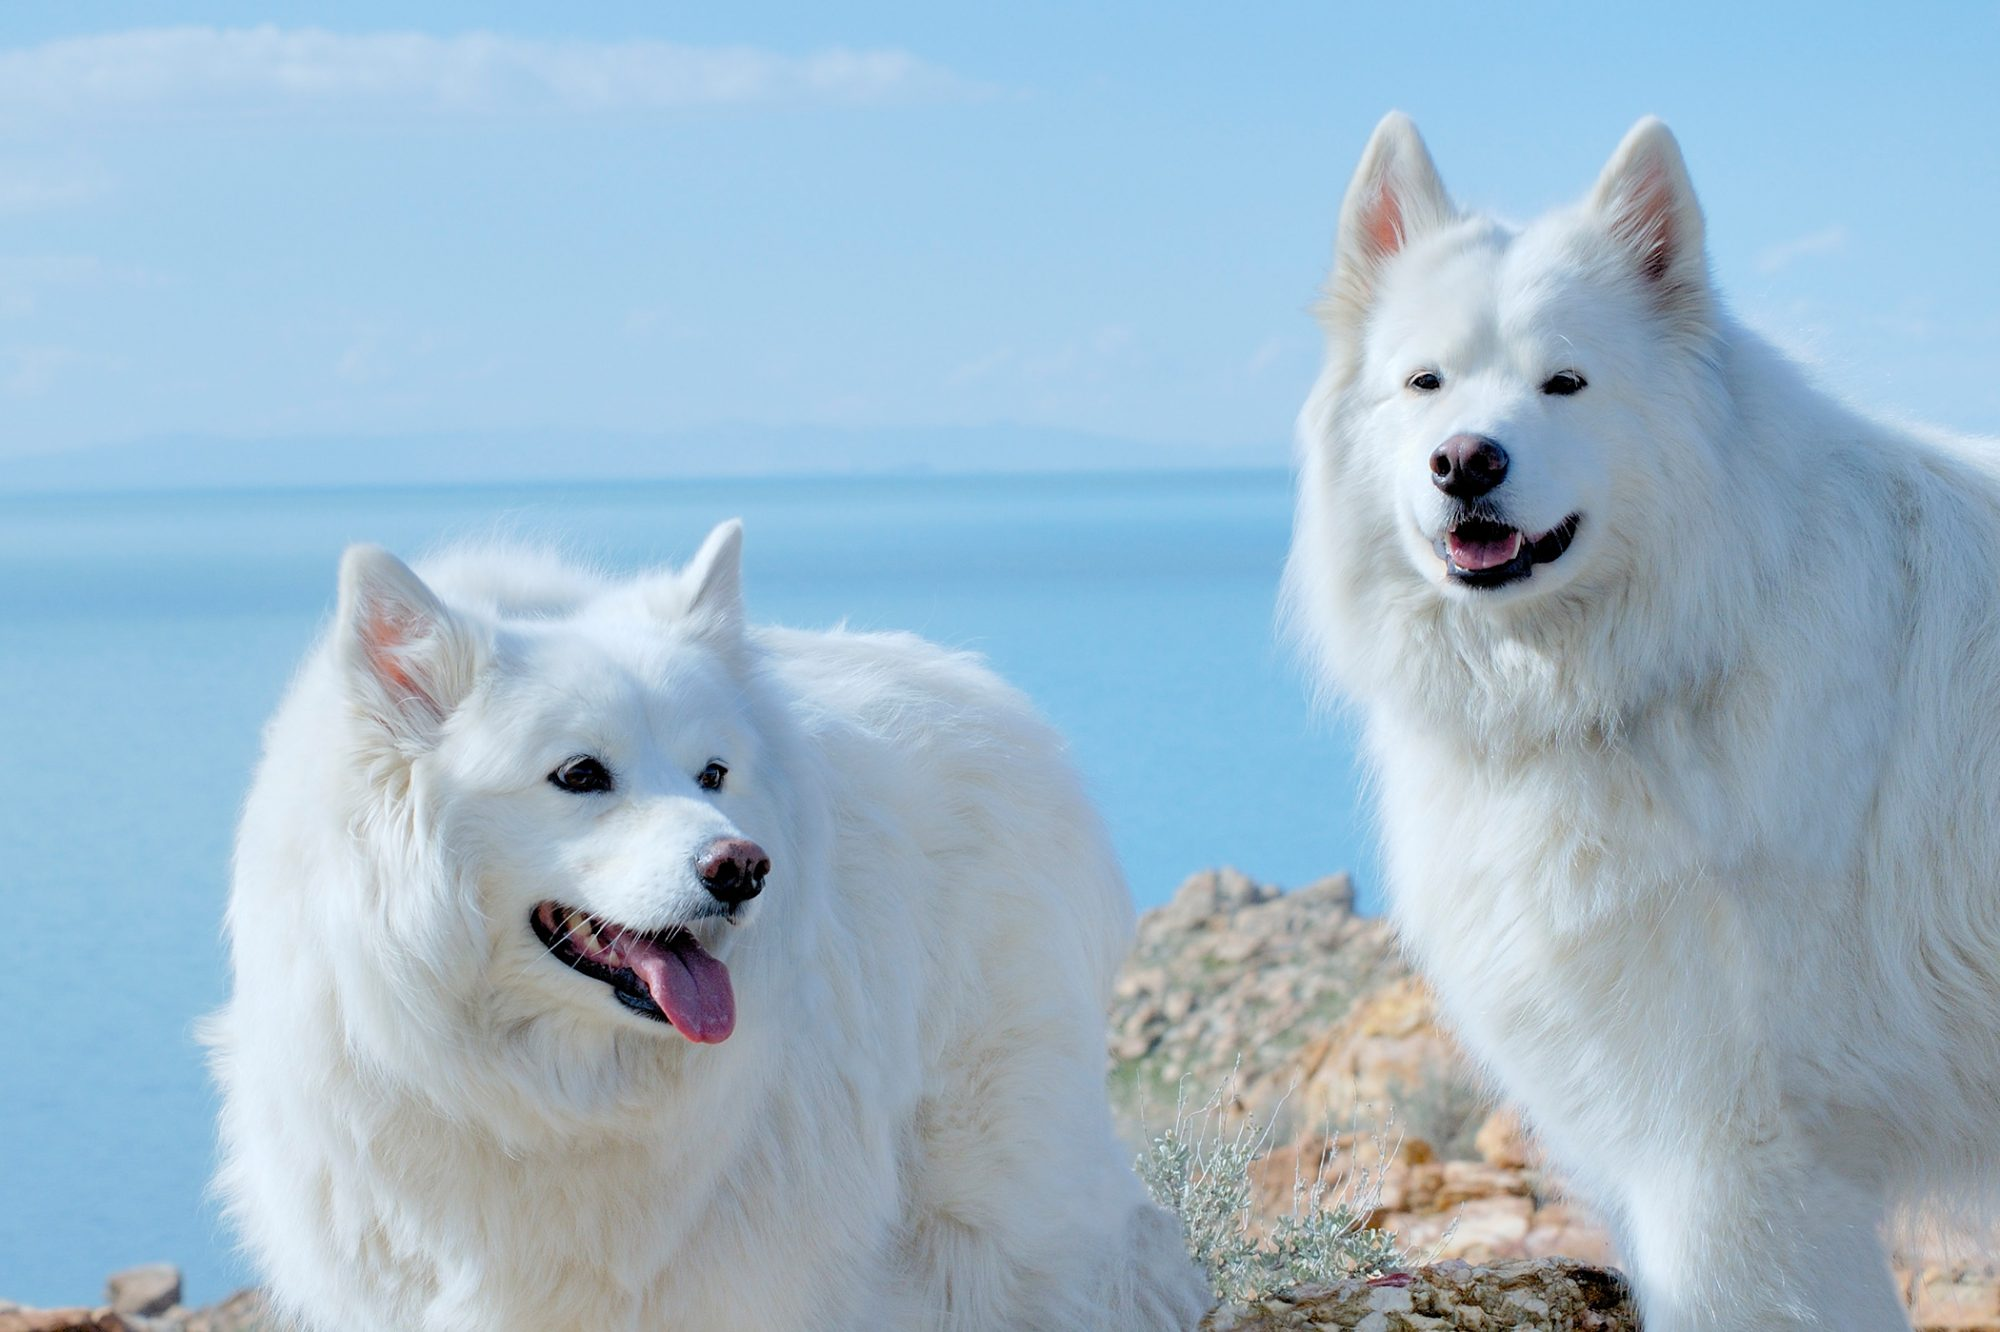 Pair of Alaskan Malamute dogs stand smiling on ocean cliff